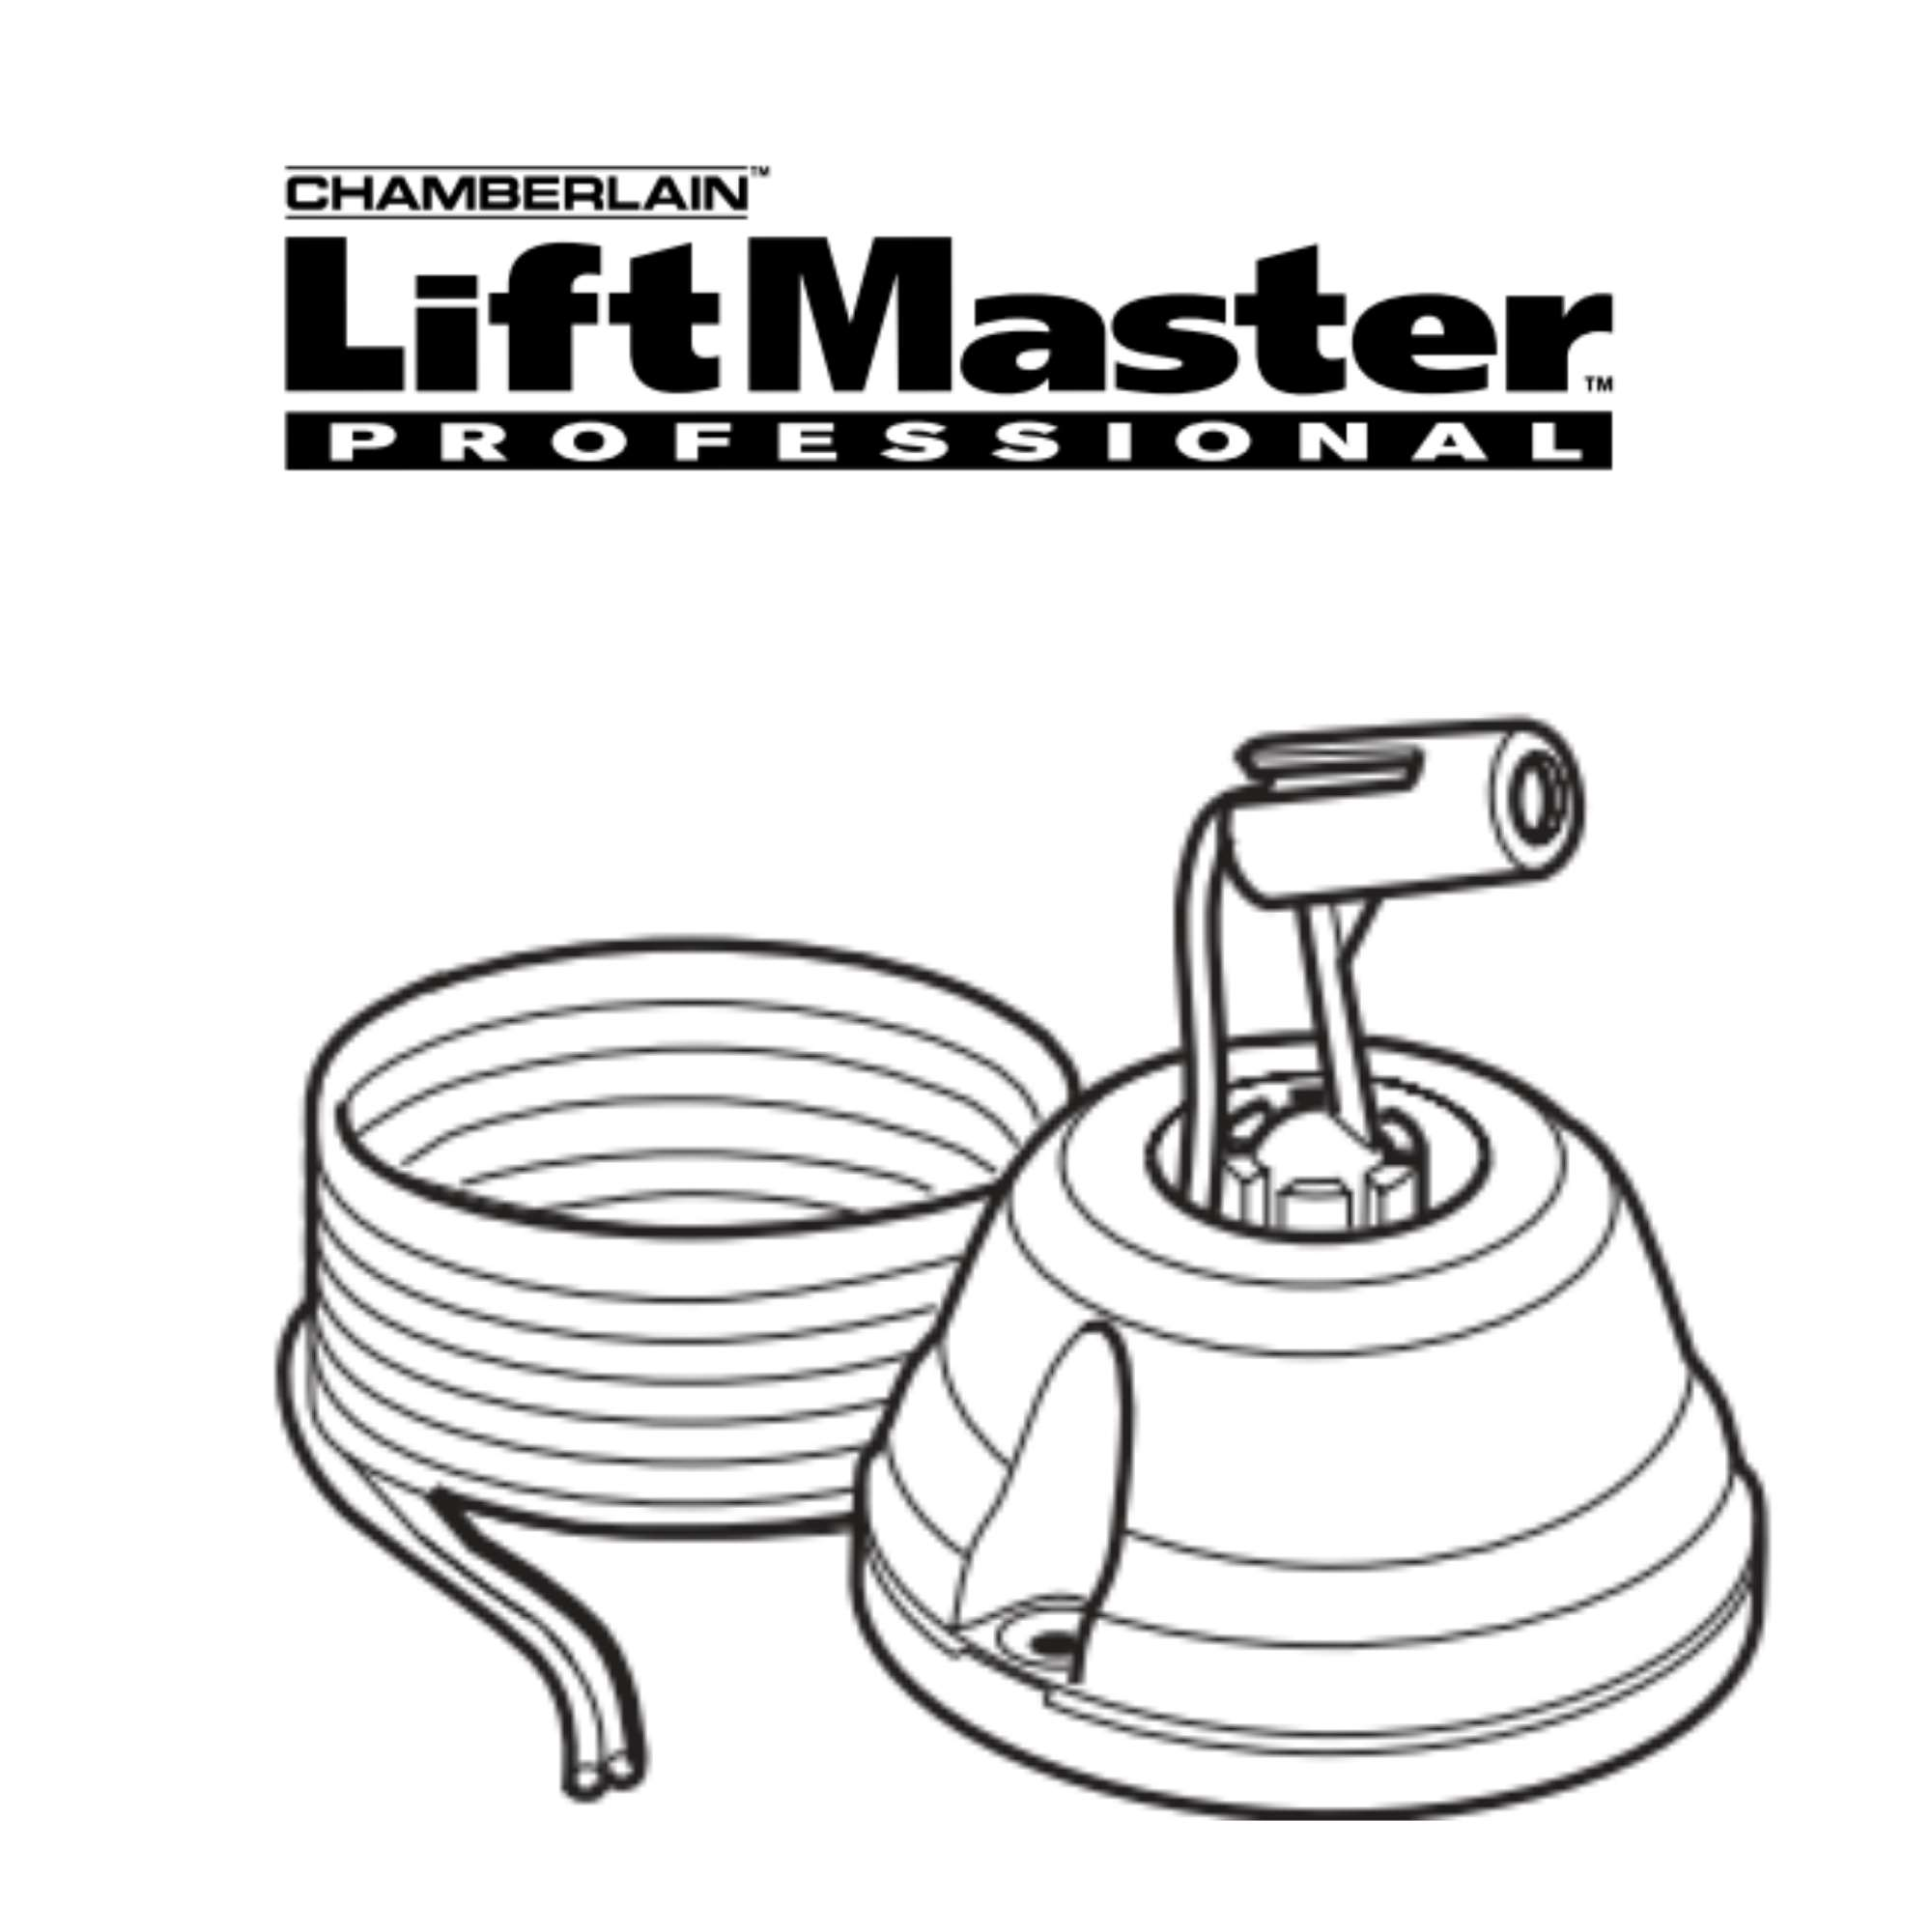 Liftmaster Laser Garage Parking Assistant – Model 975LM and 976LMC